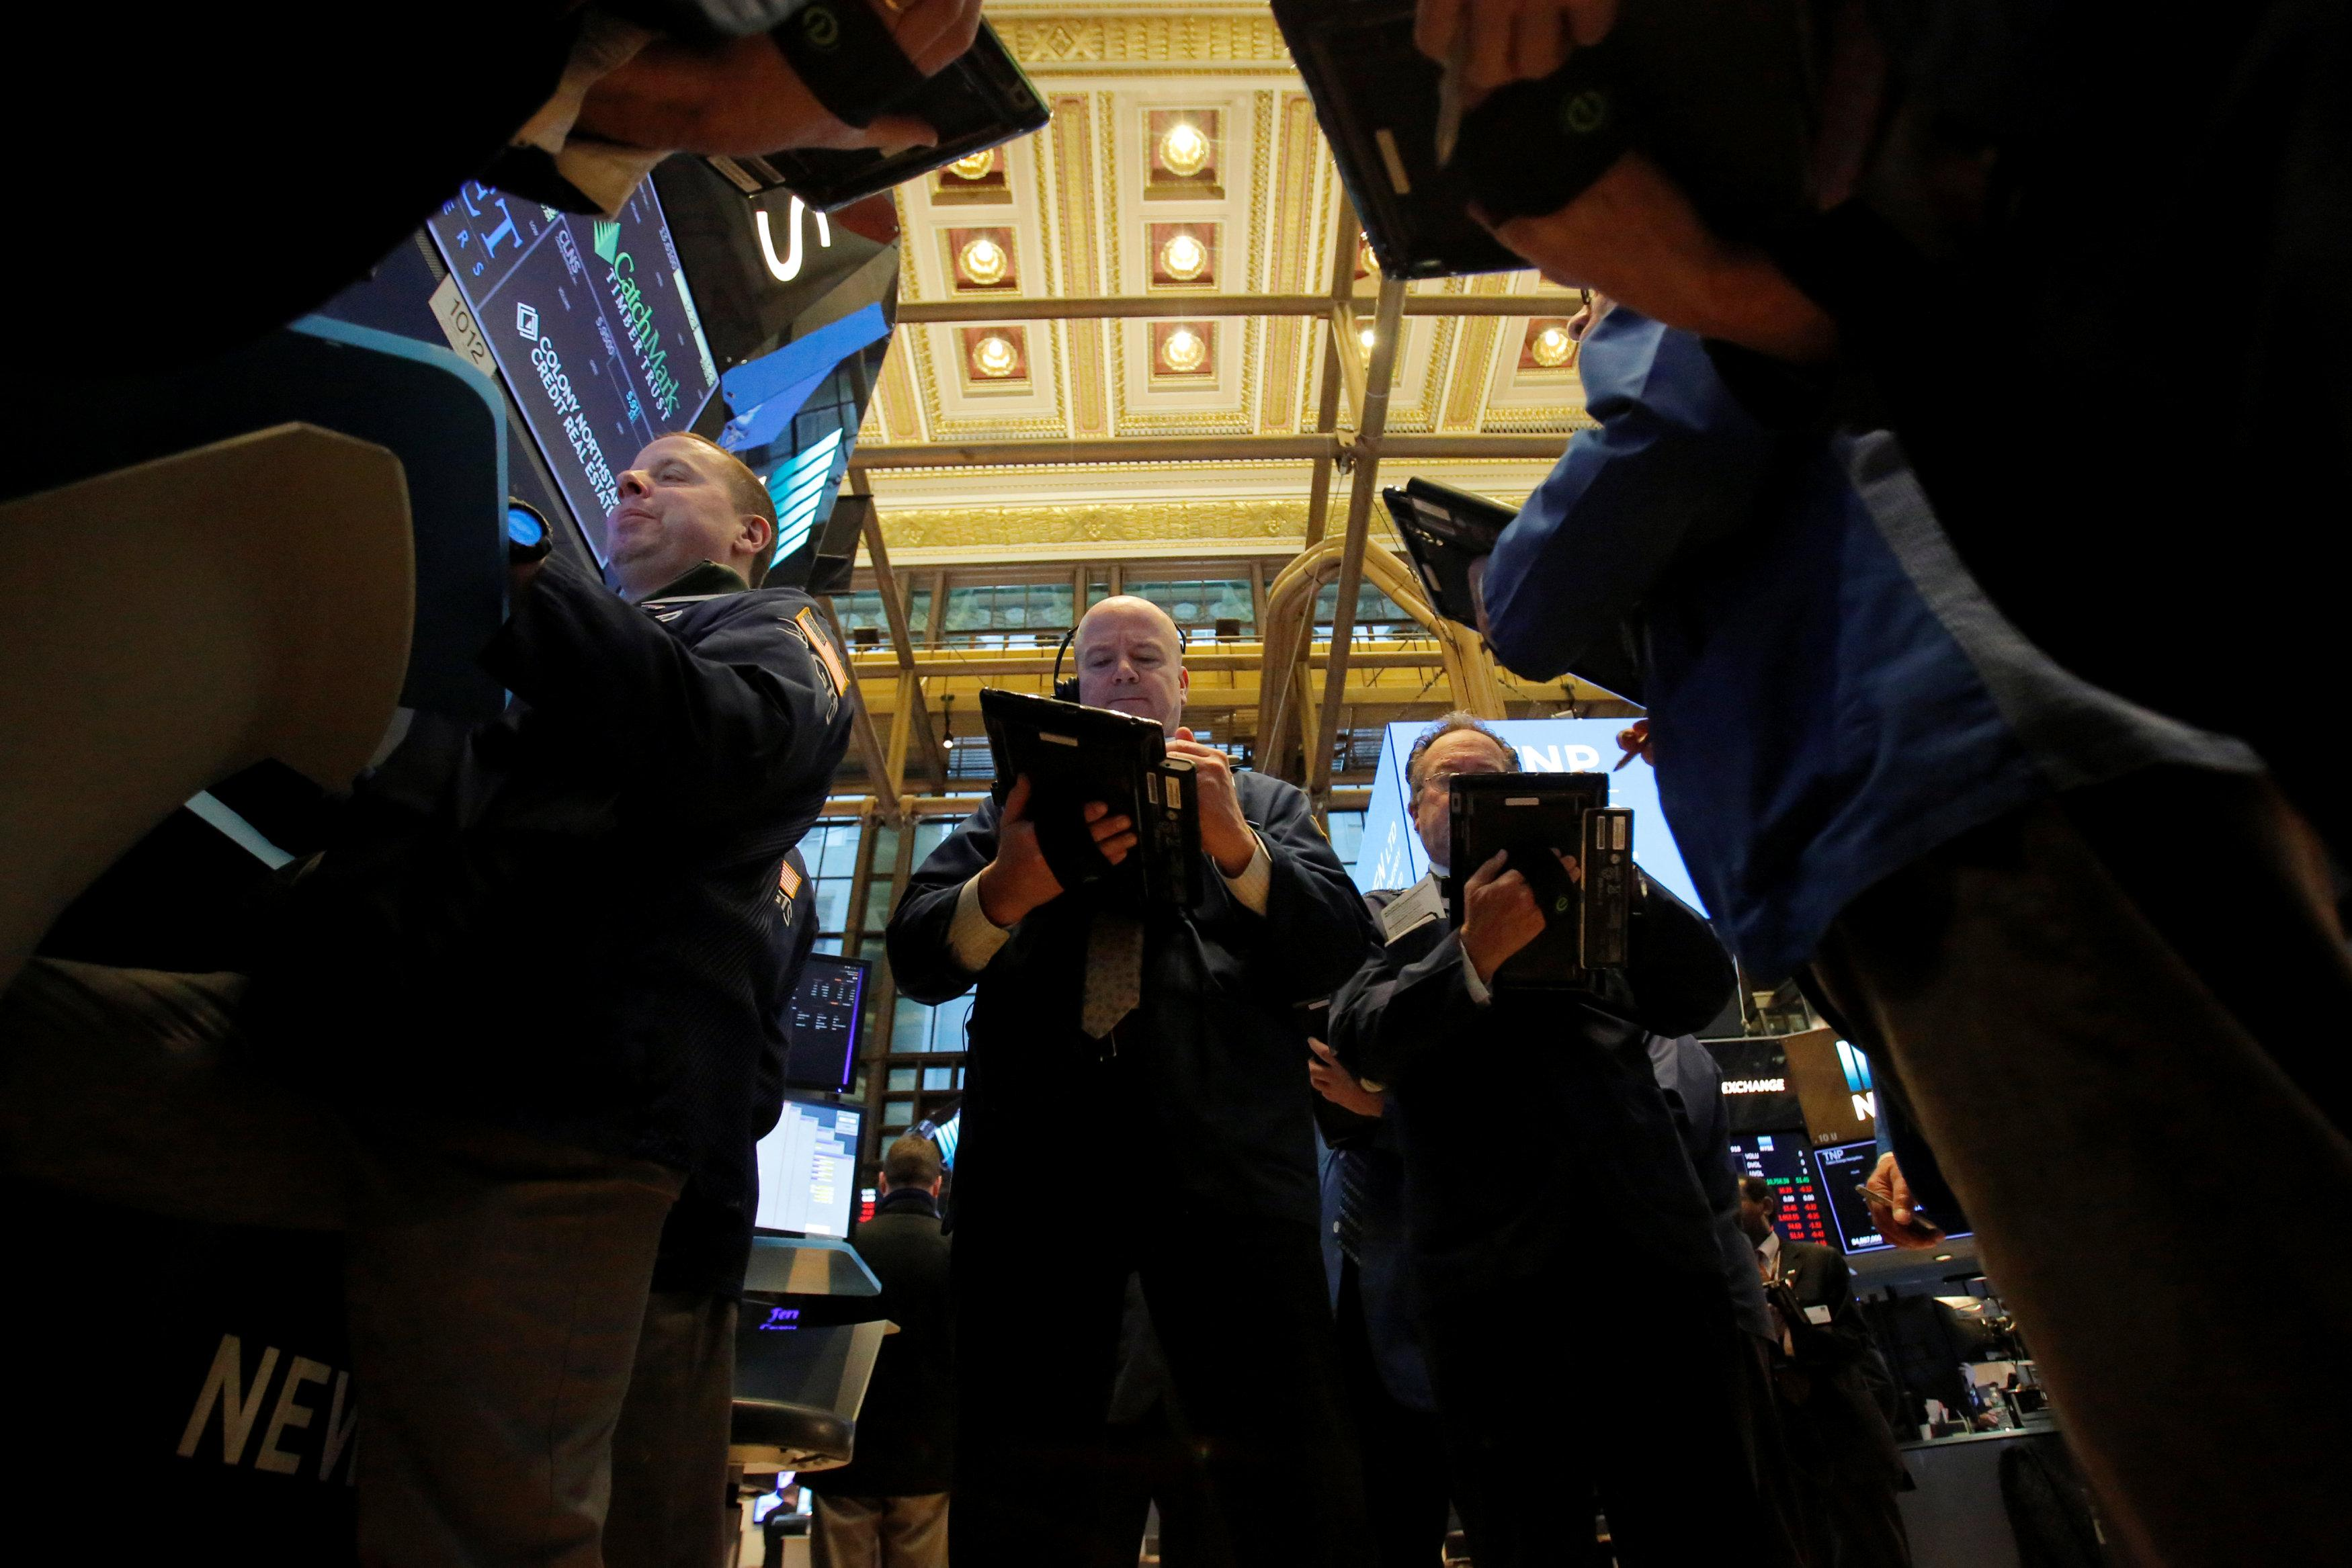 Traders work on the trading floor at the New York Stock Exchange (NYSE) in Manhattan, New York City, U.S., March 14, 2018. Andrew Kelly